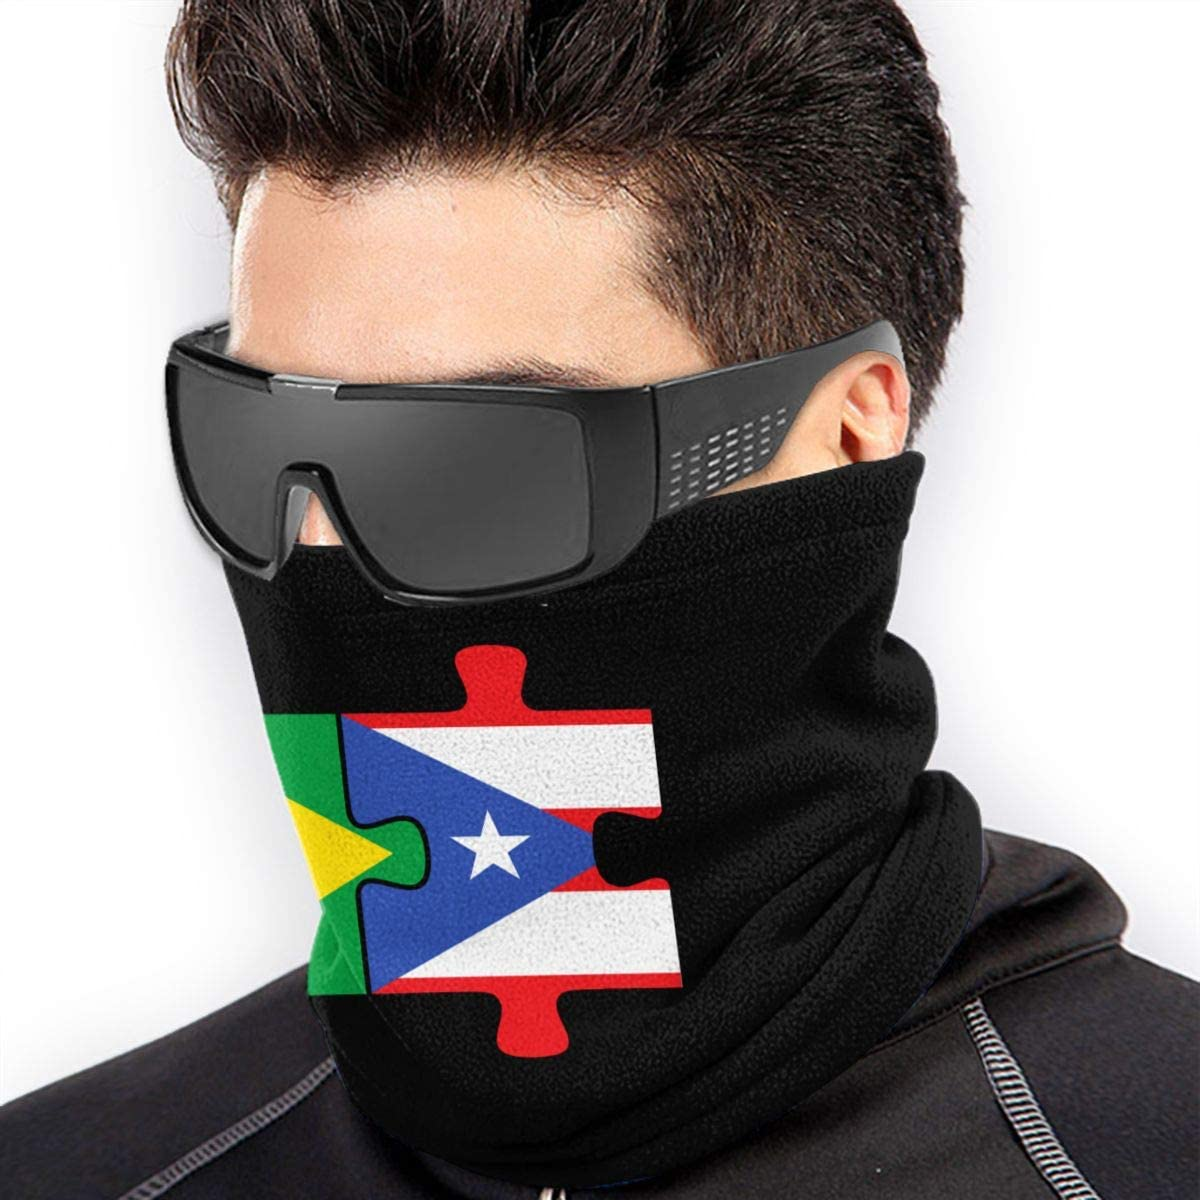 Brazil Puerto Rico Flags Puzzle Mens Womens Face Mask Windproof Neck Warmer Cold Weather Bandana For Fishing Motorcycling